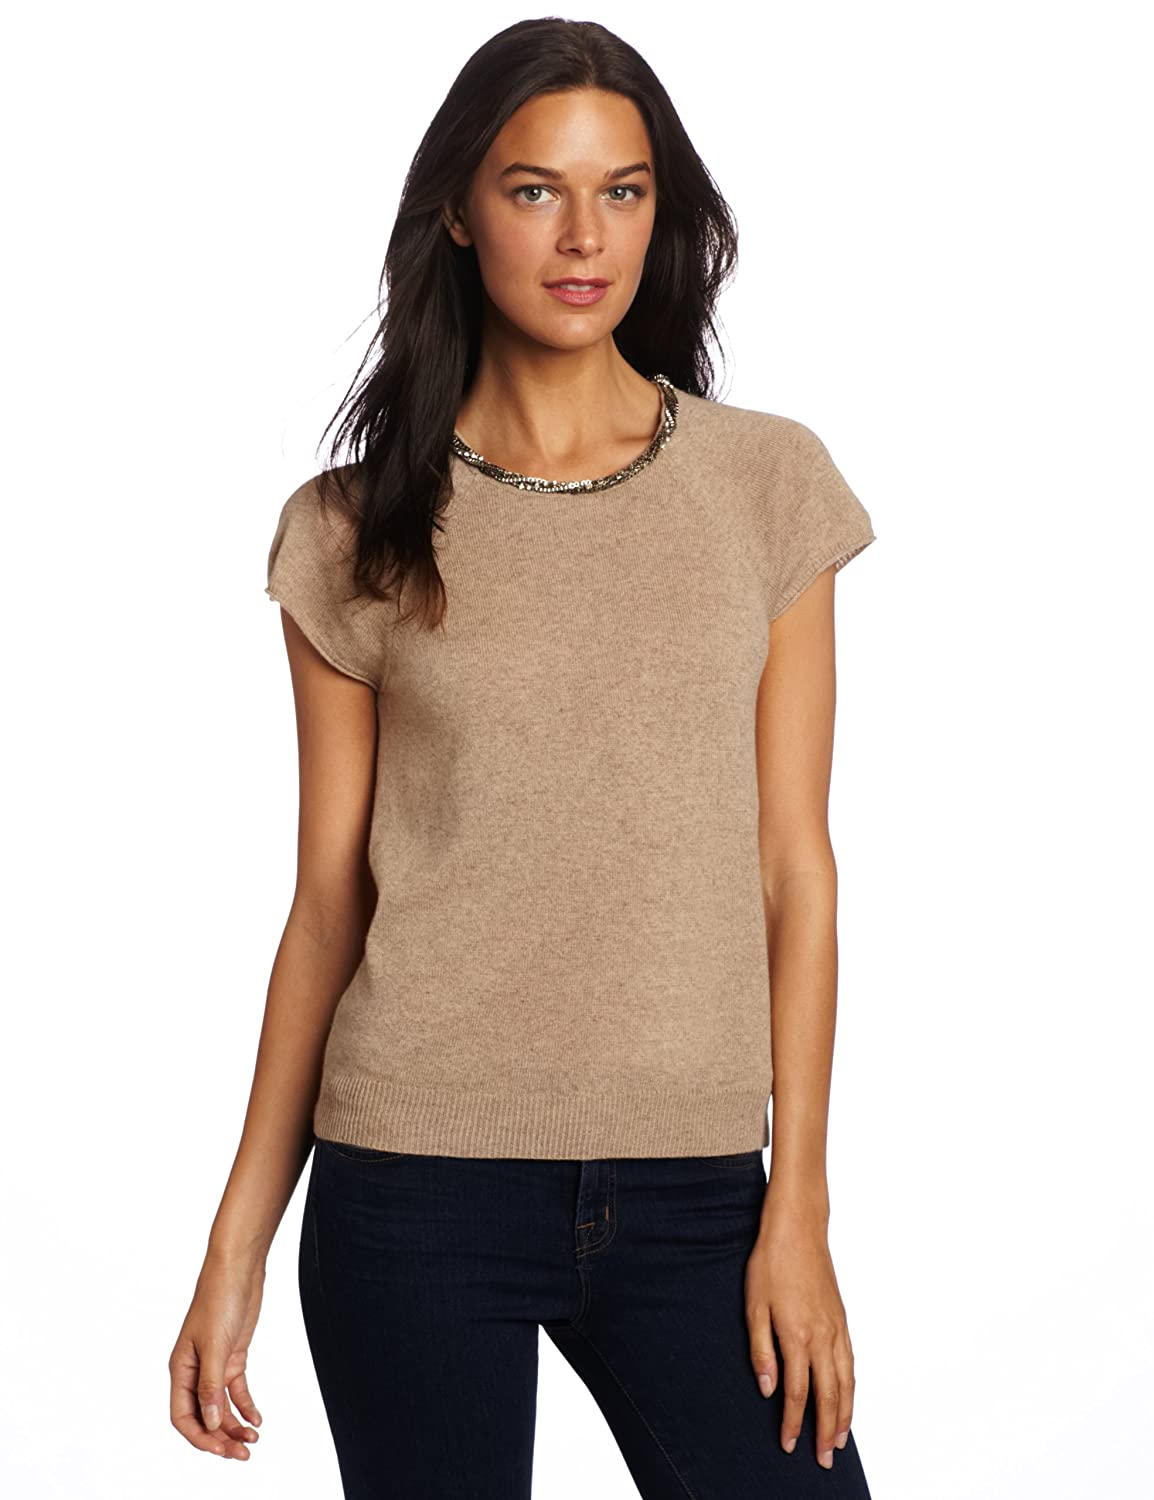 Buy Magaschoni Women's 100% Cashmere Embellished Crew Neck